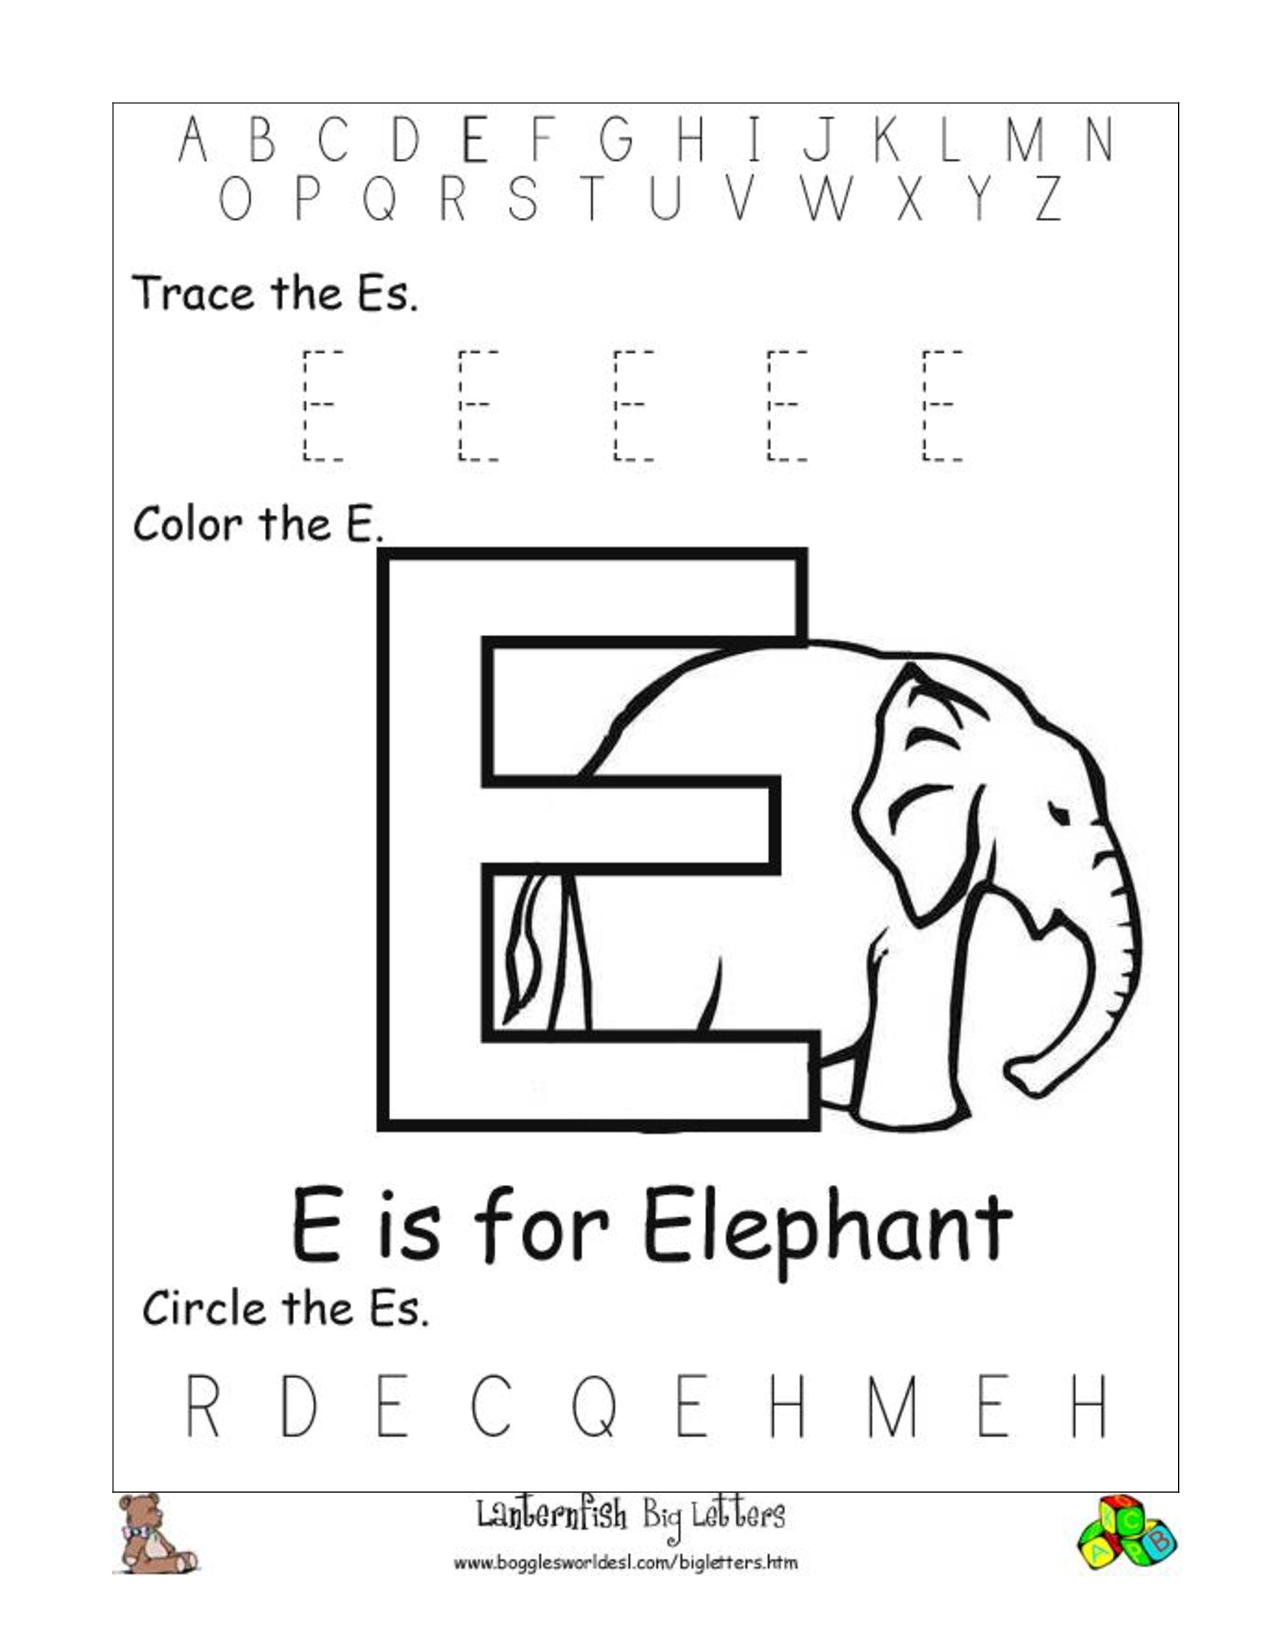 Printables Free Printable Alphabet Worksheets For Pre-k free alphabet worksheets pre k worksheet printable more 8 best images of activities for preschoolers